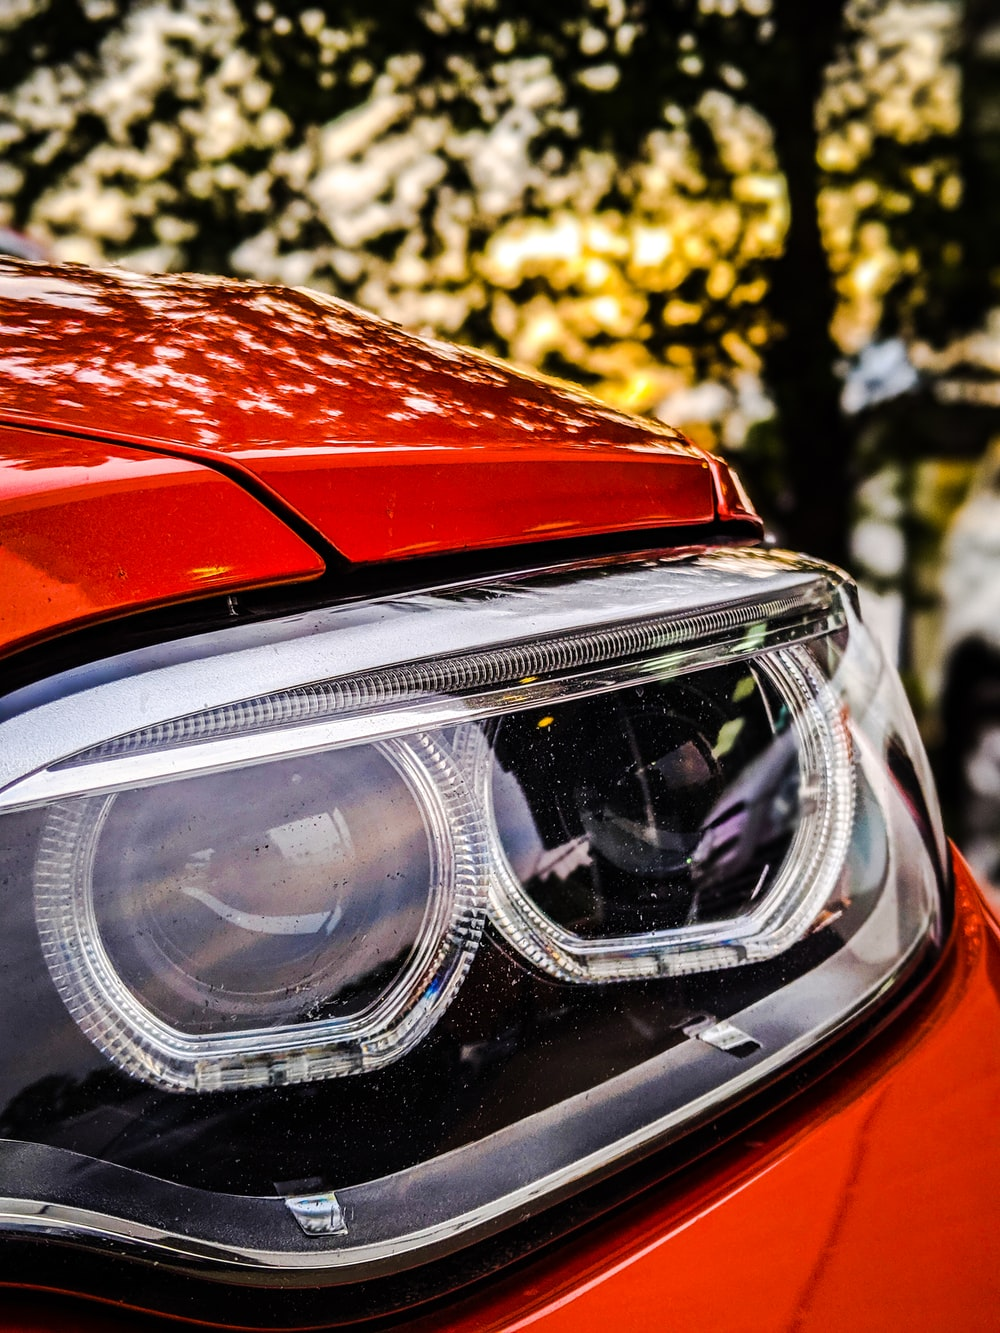 vehicle headlight in close up photo